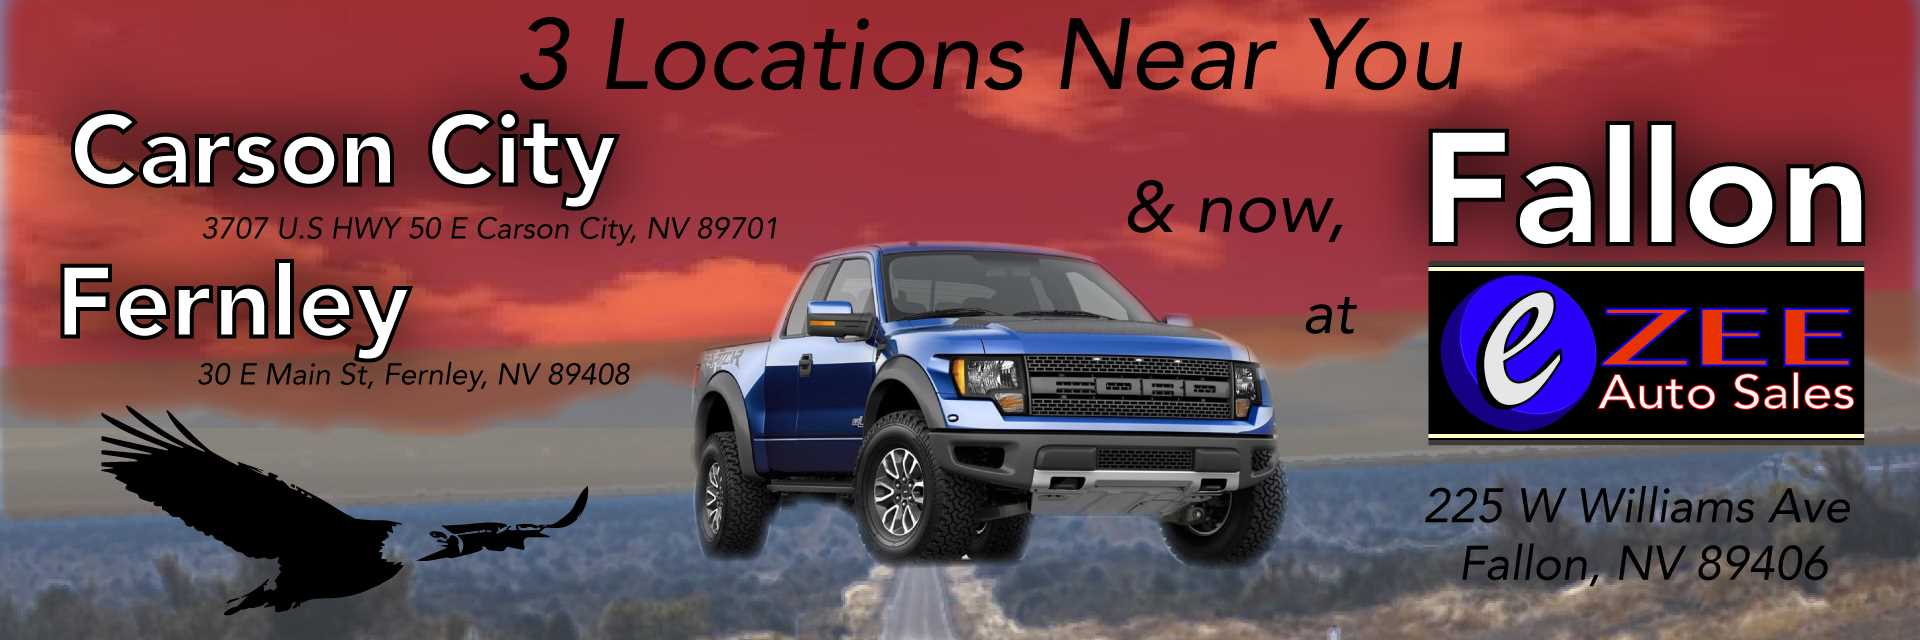 Eagle Valley Motors Carson City Nv New Used Cars Trucks Sales Dayton Home Page